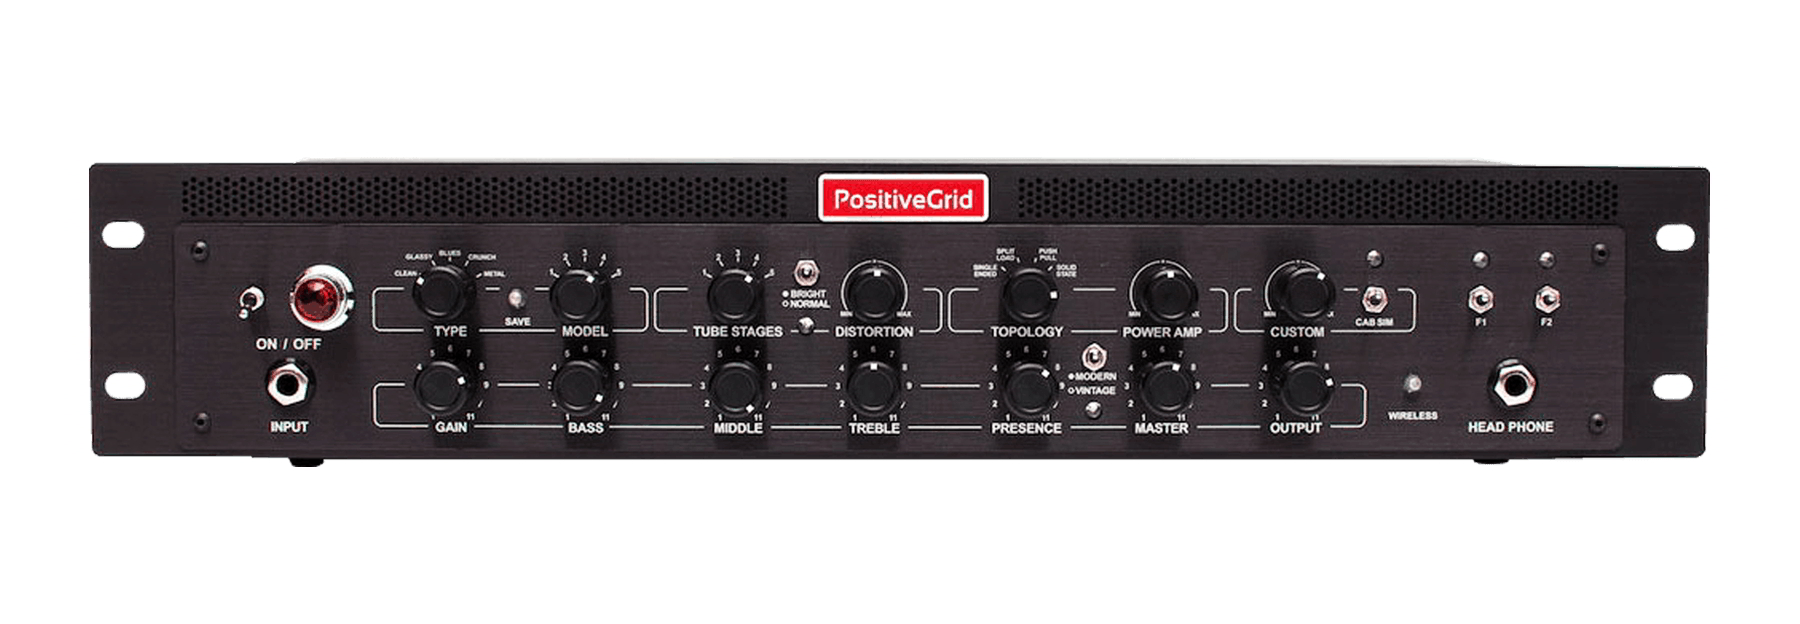 BIAS Rack Processor AMP MATCH RACKMOUNT PRE AMPLIFIERパネル画像